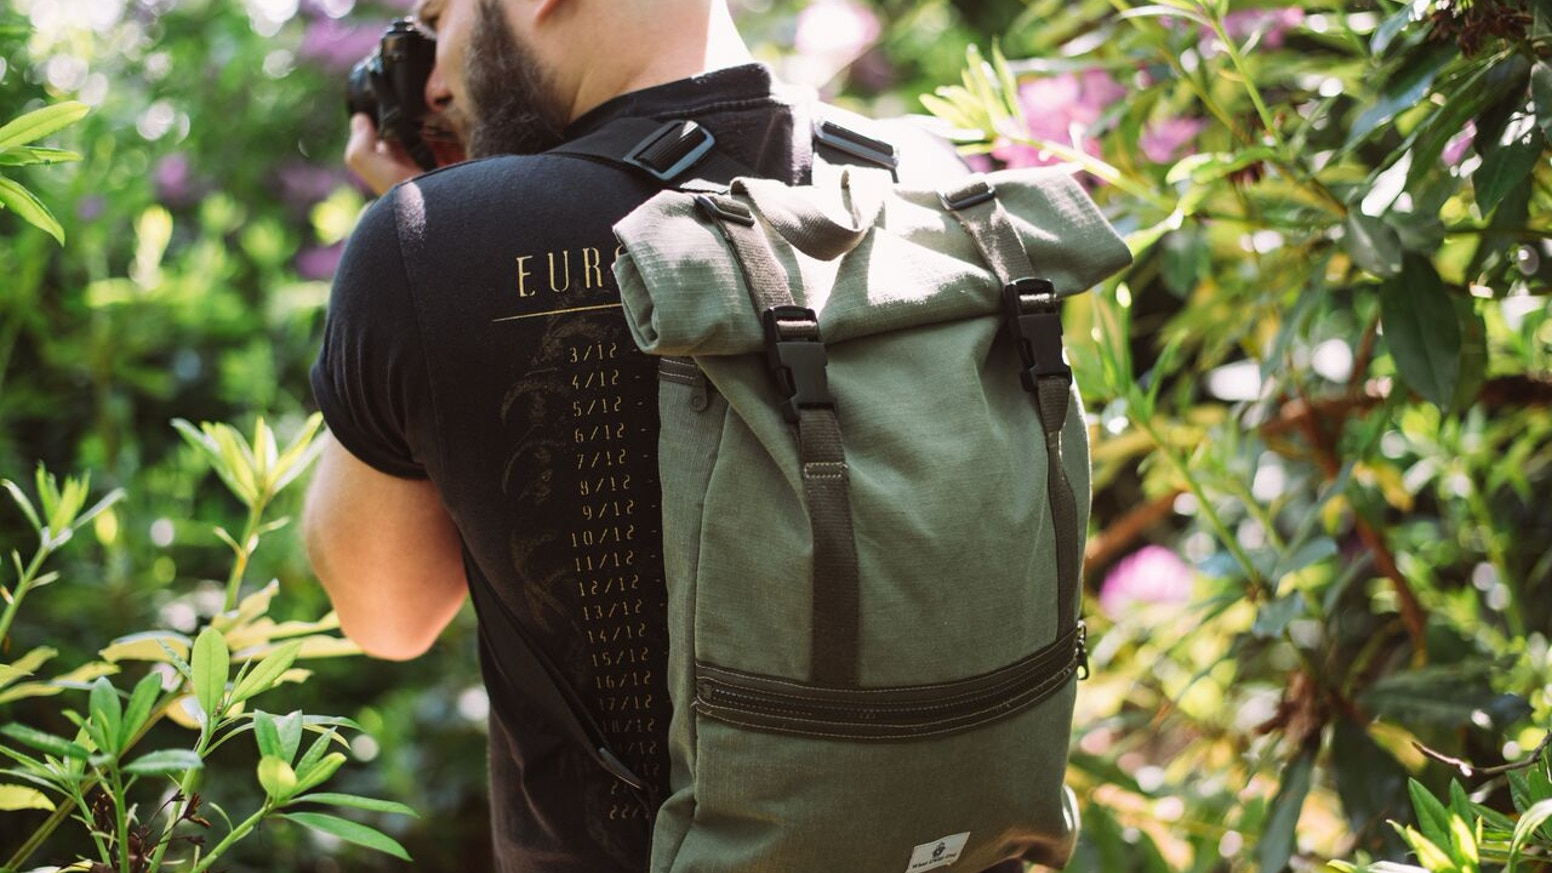 Creating jobs for homeless people through the creation of our vegan bags recycled from strong, waterproof army surplus materials.